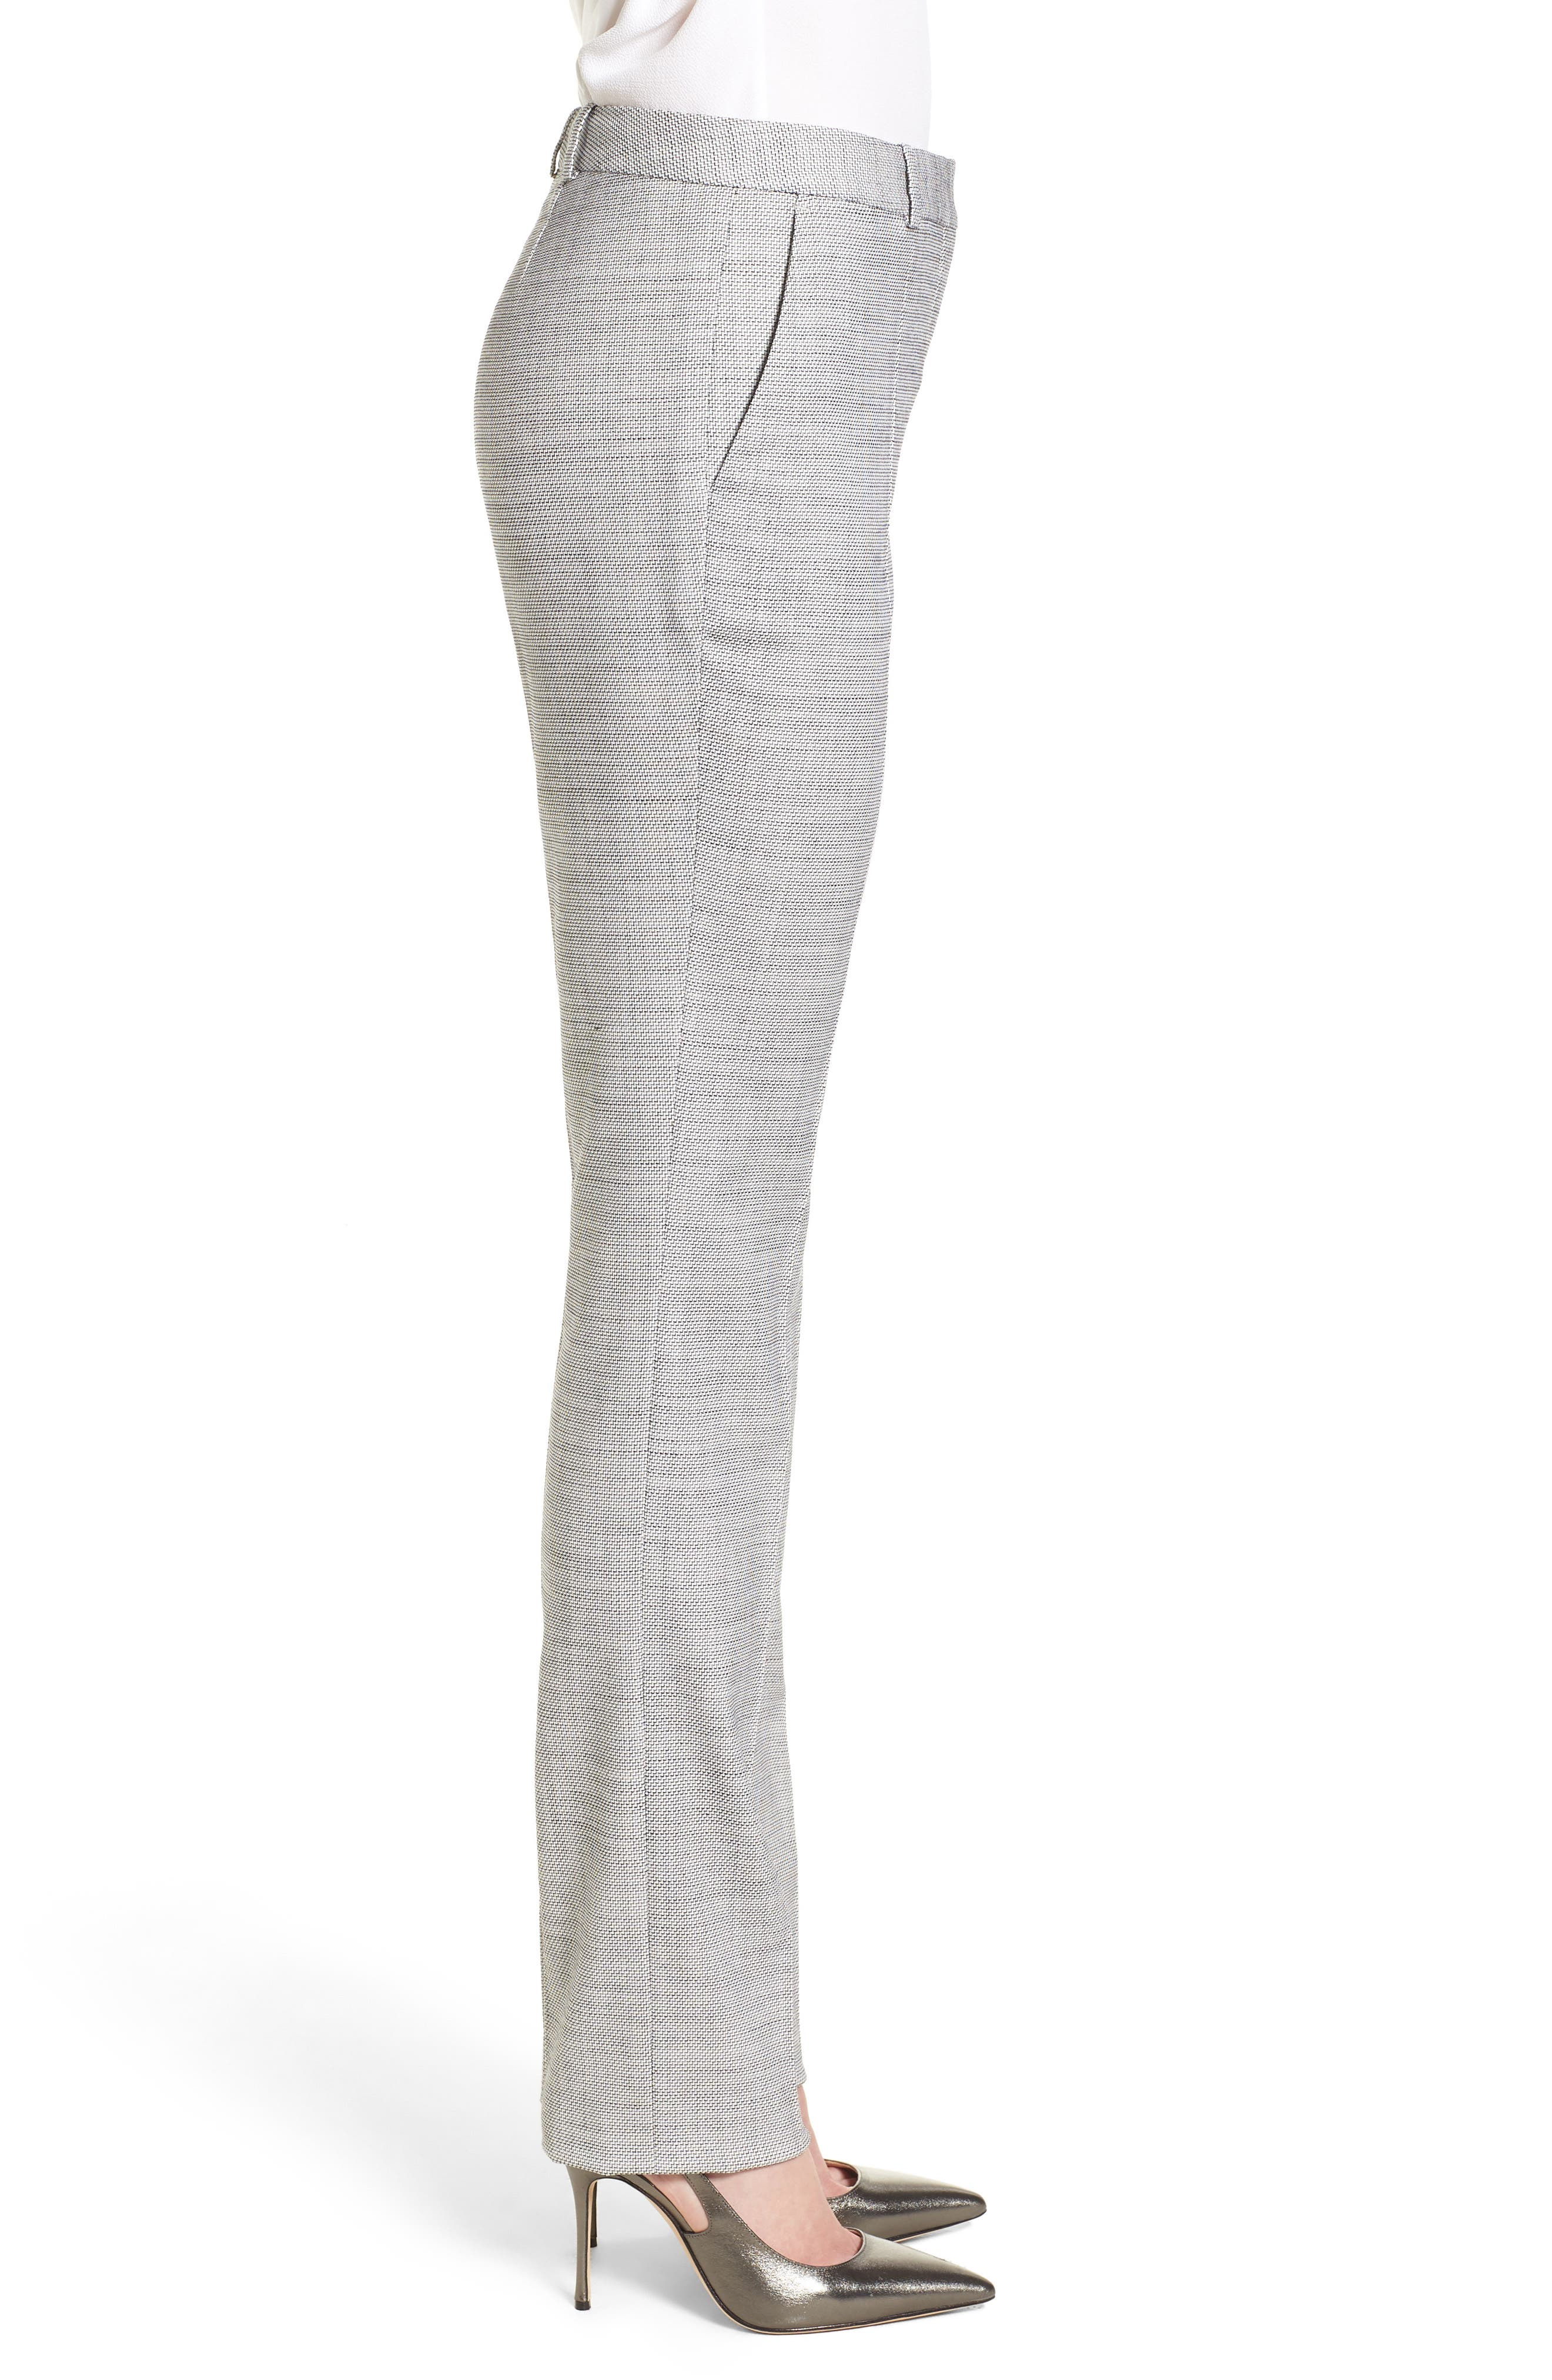 Titana Straight Leg Suit Pants,                             Alternate thumbnail 3, color,                             165